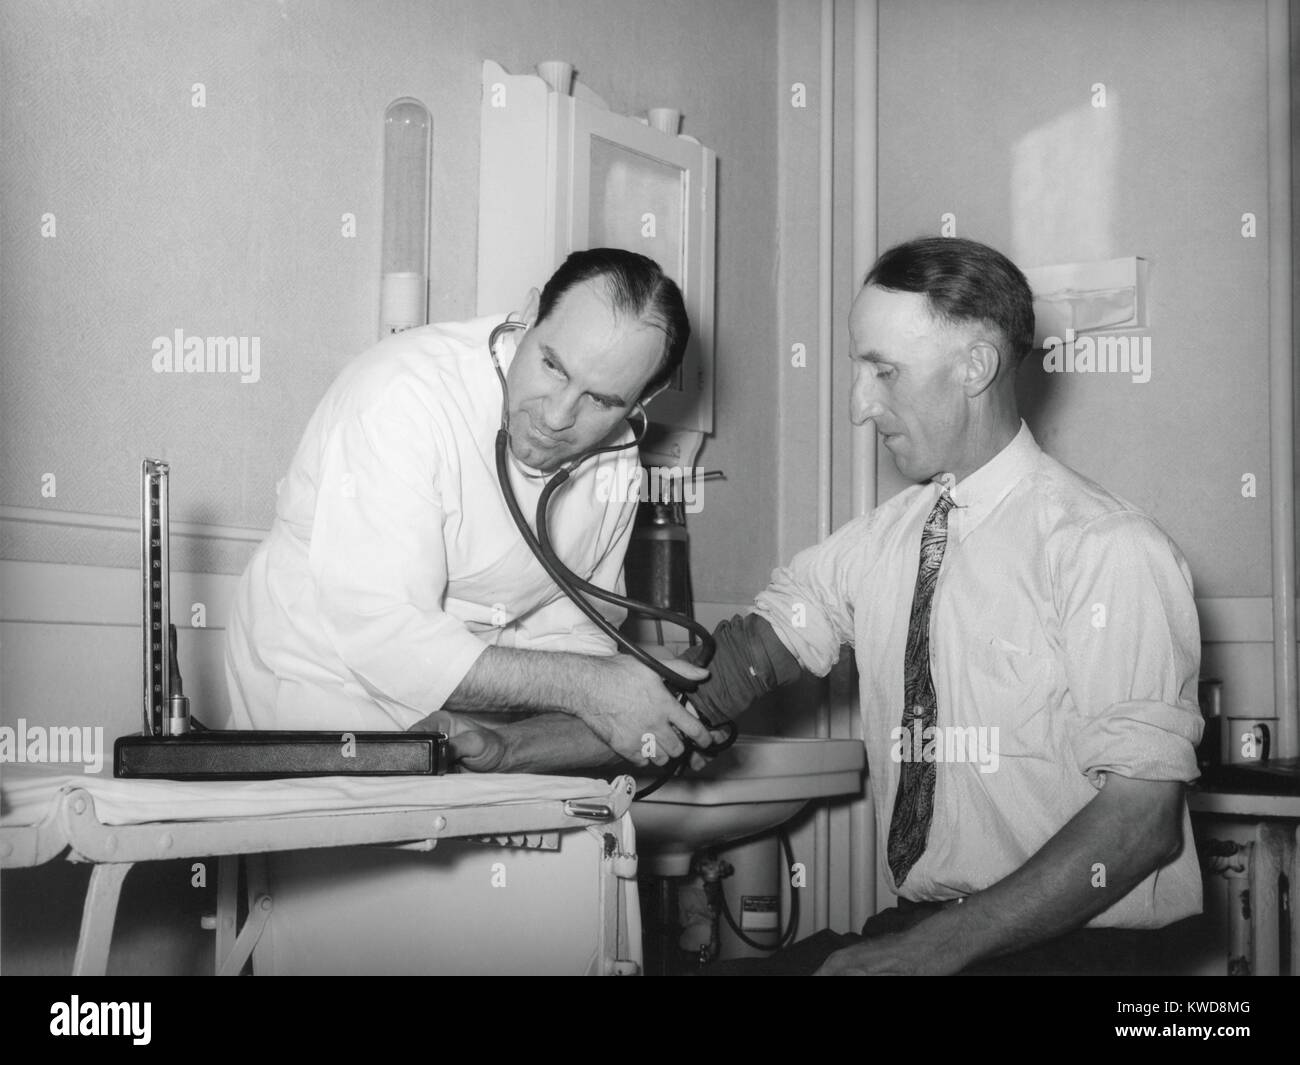 Doctor at a medical cooperative taking blood pressure of a patient in Box Elder County, Utah, 1940. In Northwest - Stock Image